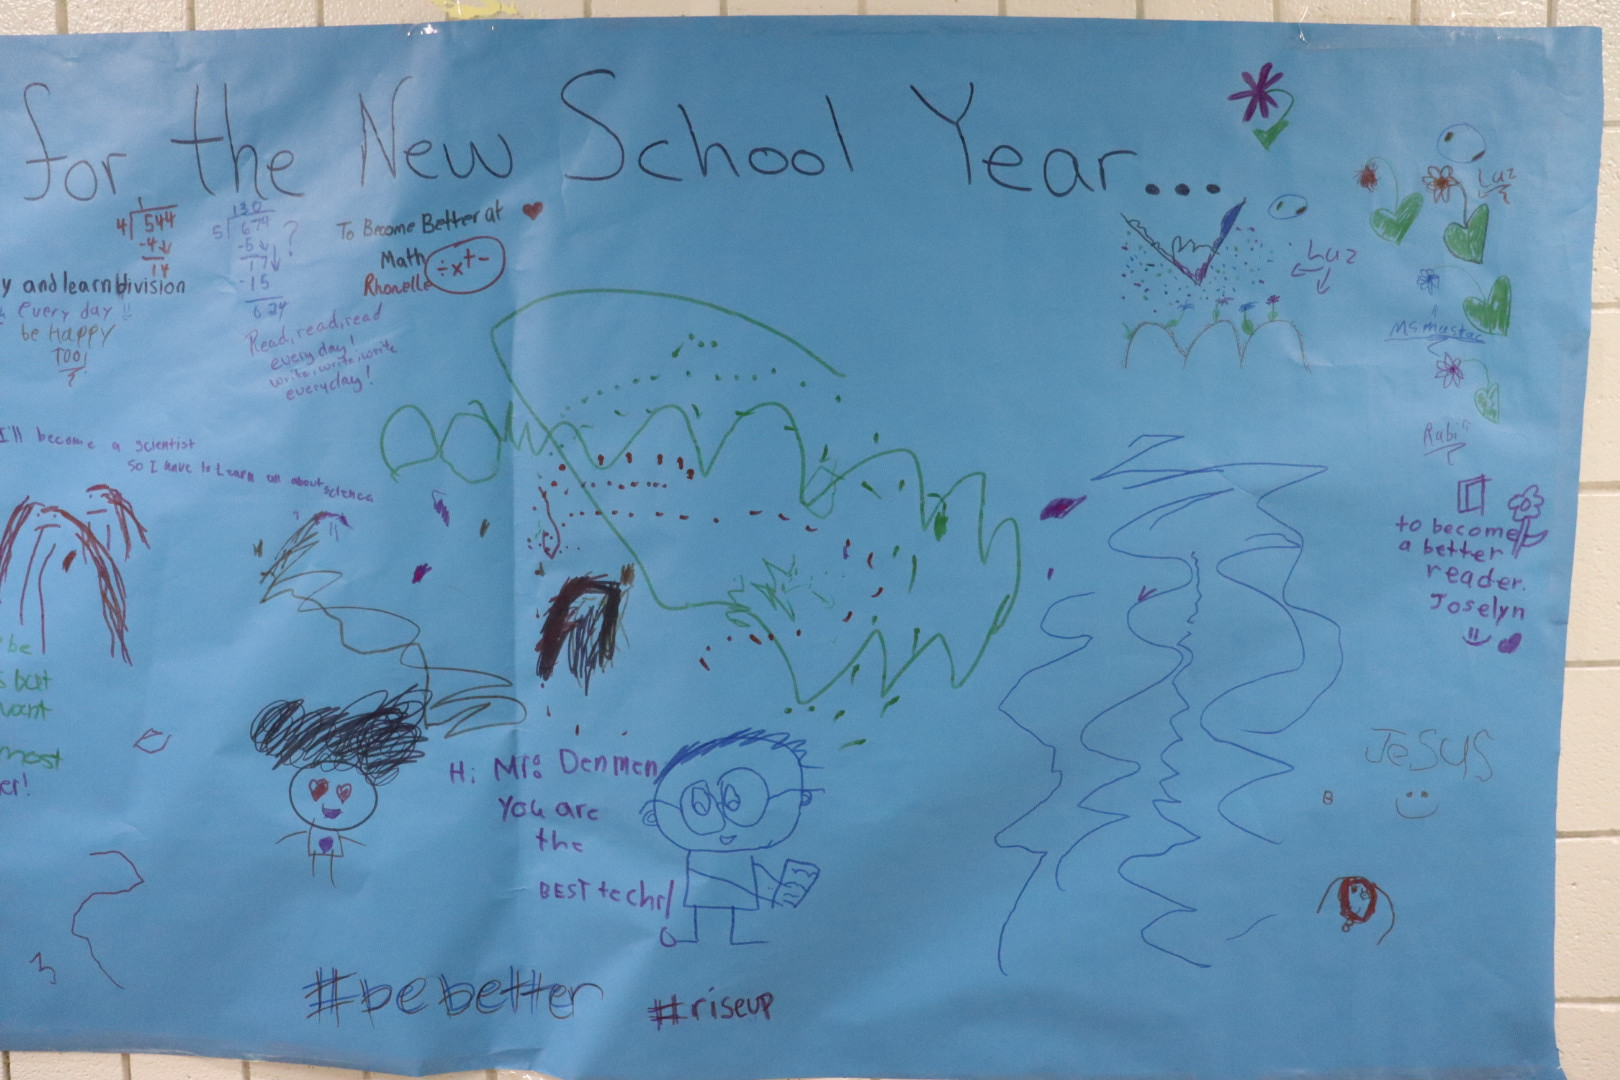 The goals for next year written by students.